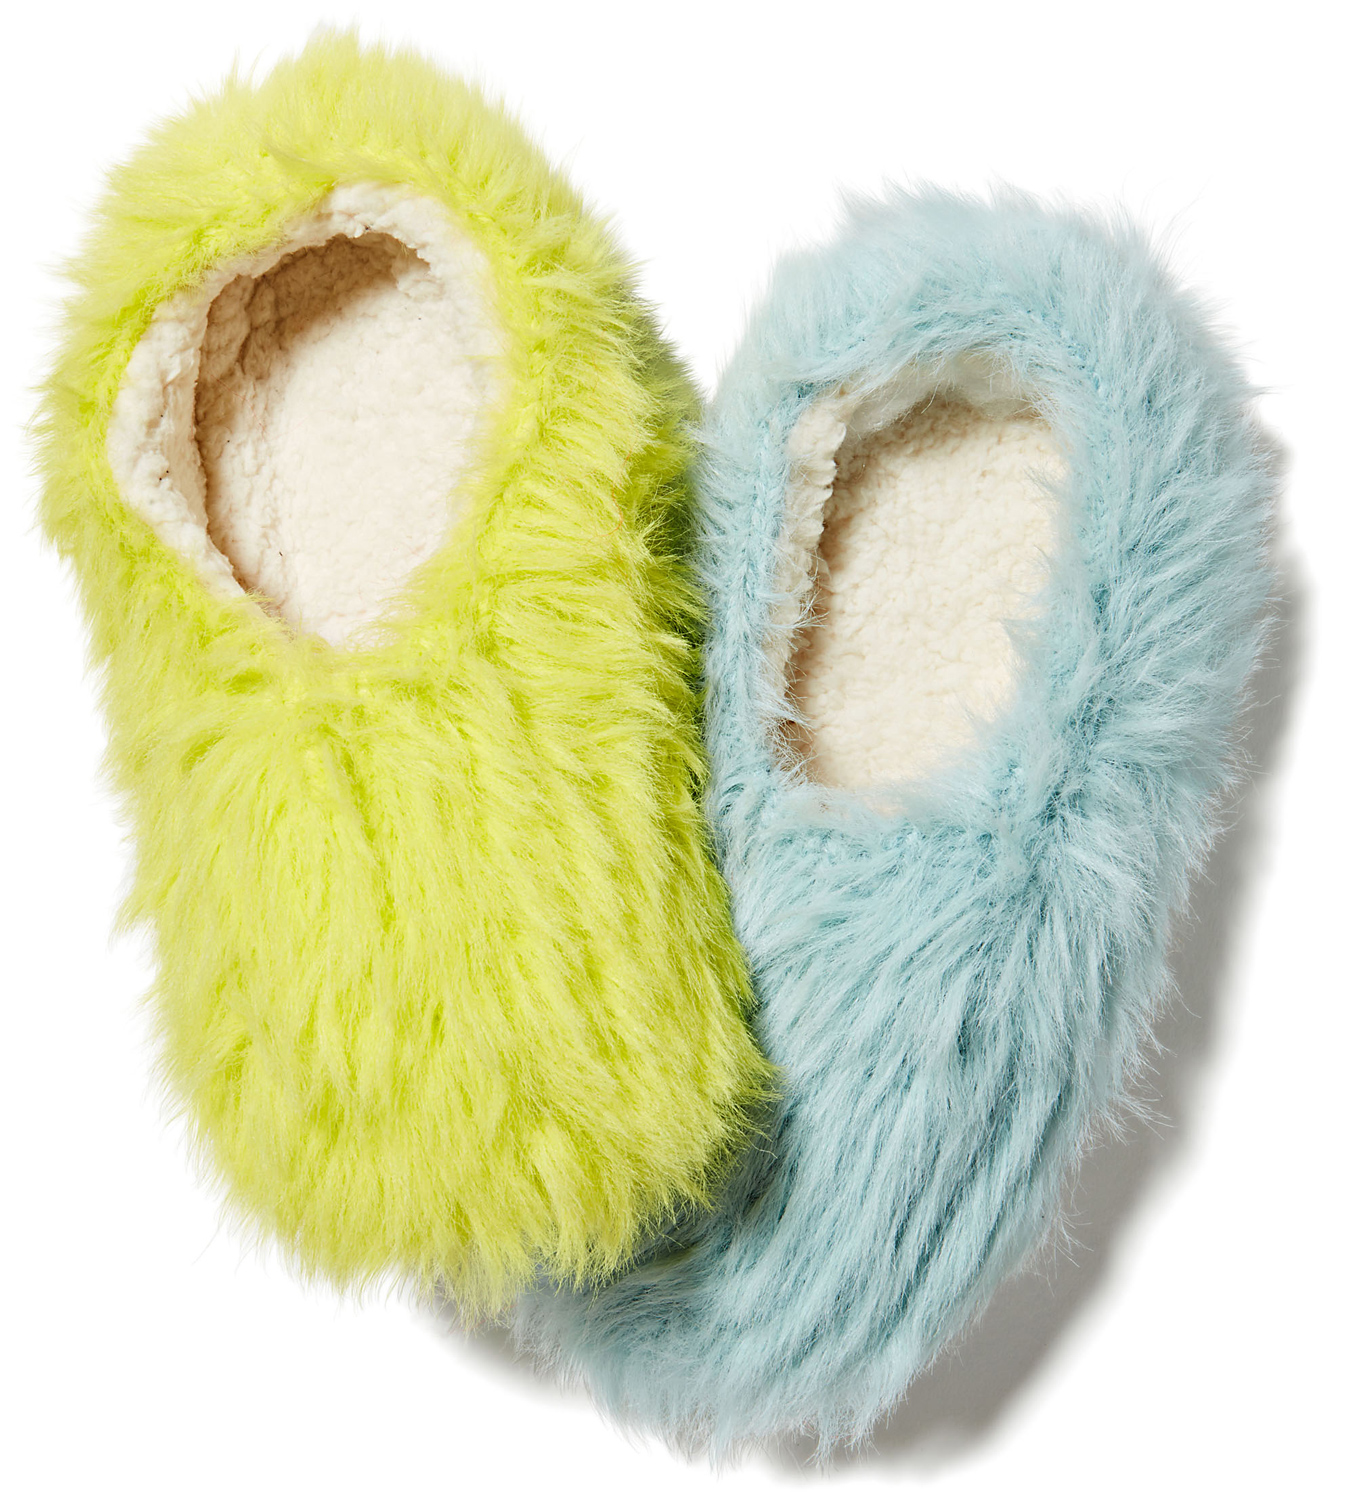 Verloop Fuzzy Faux Fur Slippers green and blue